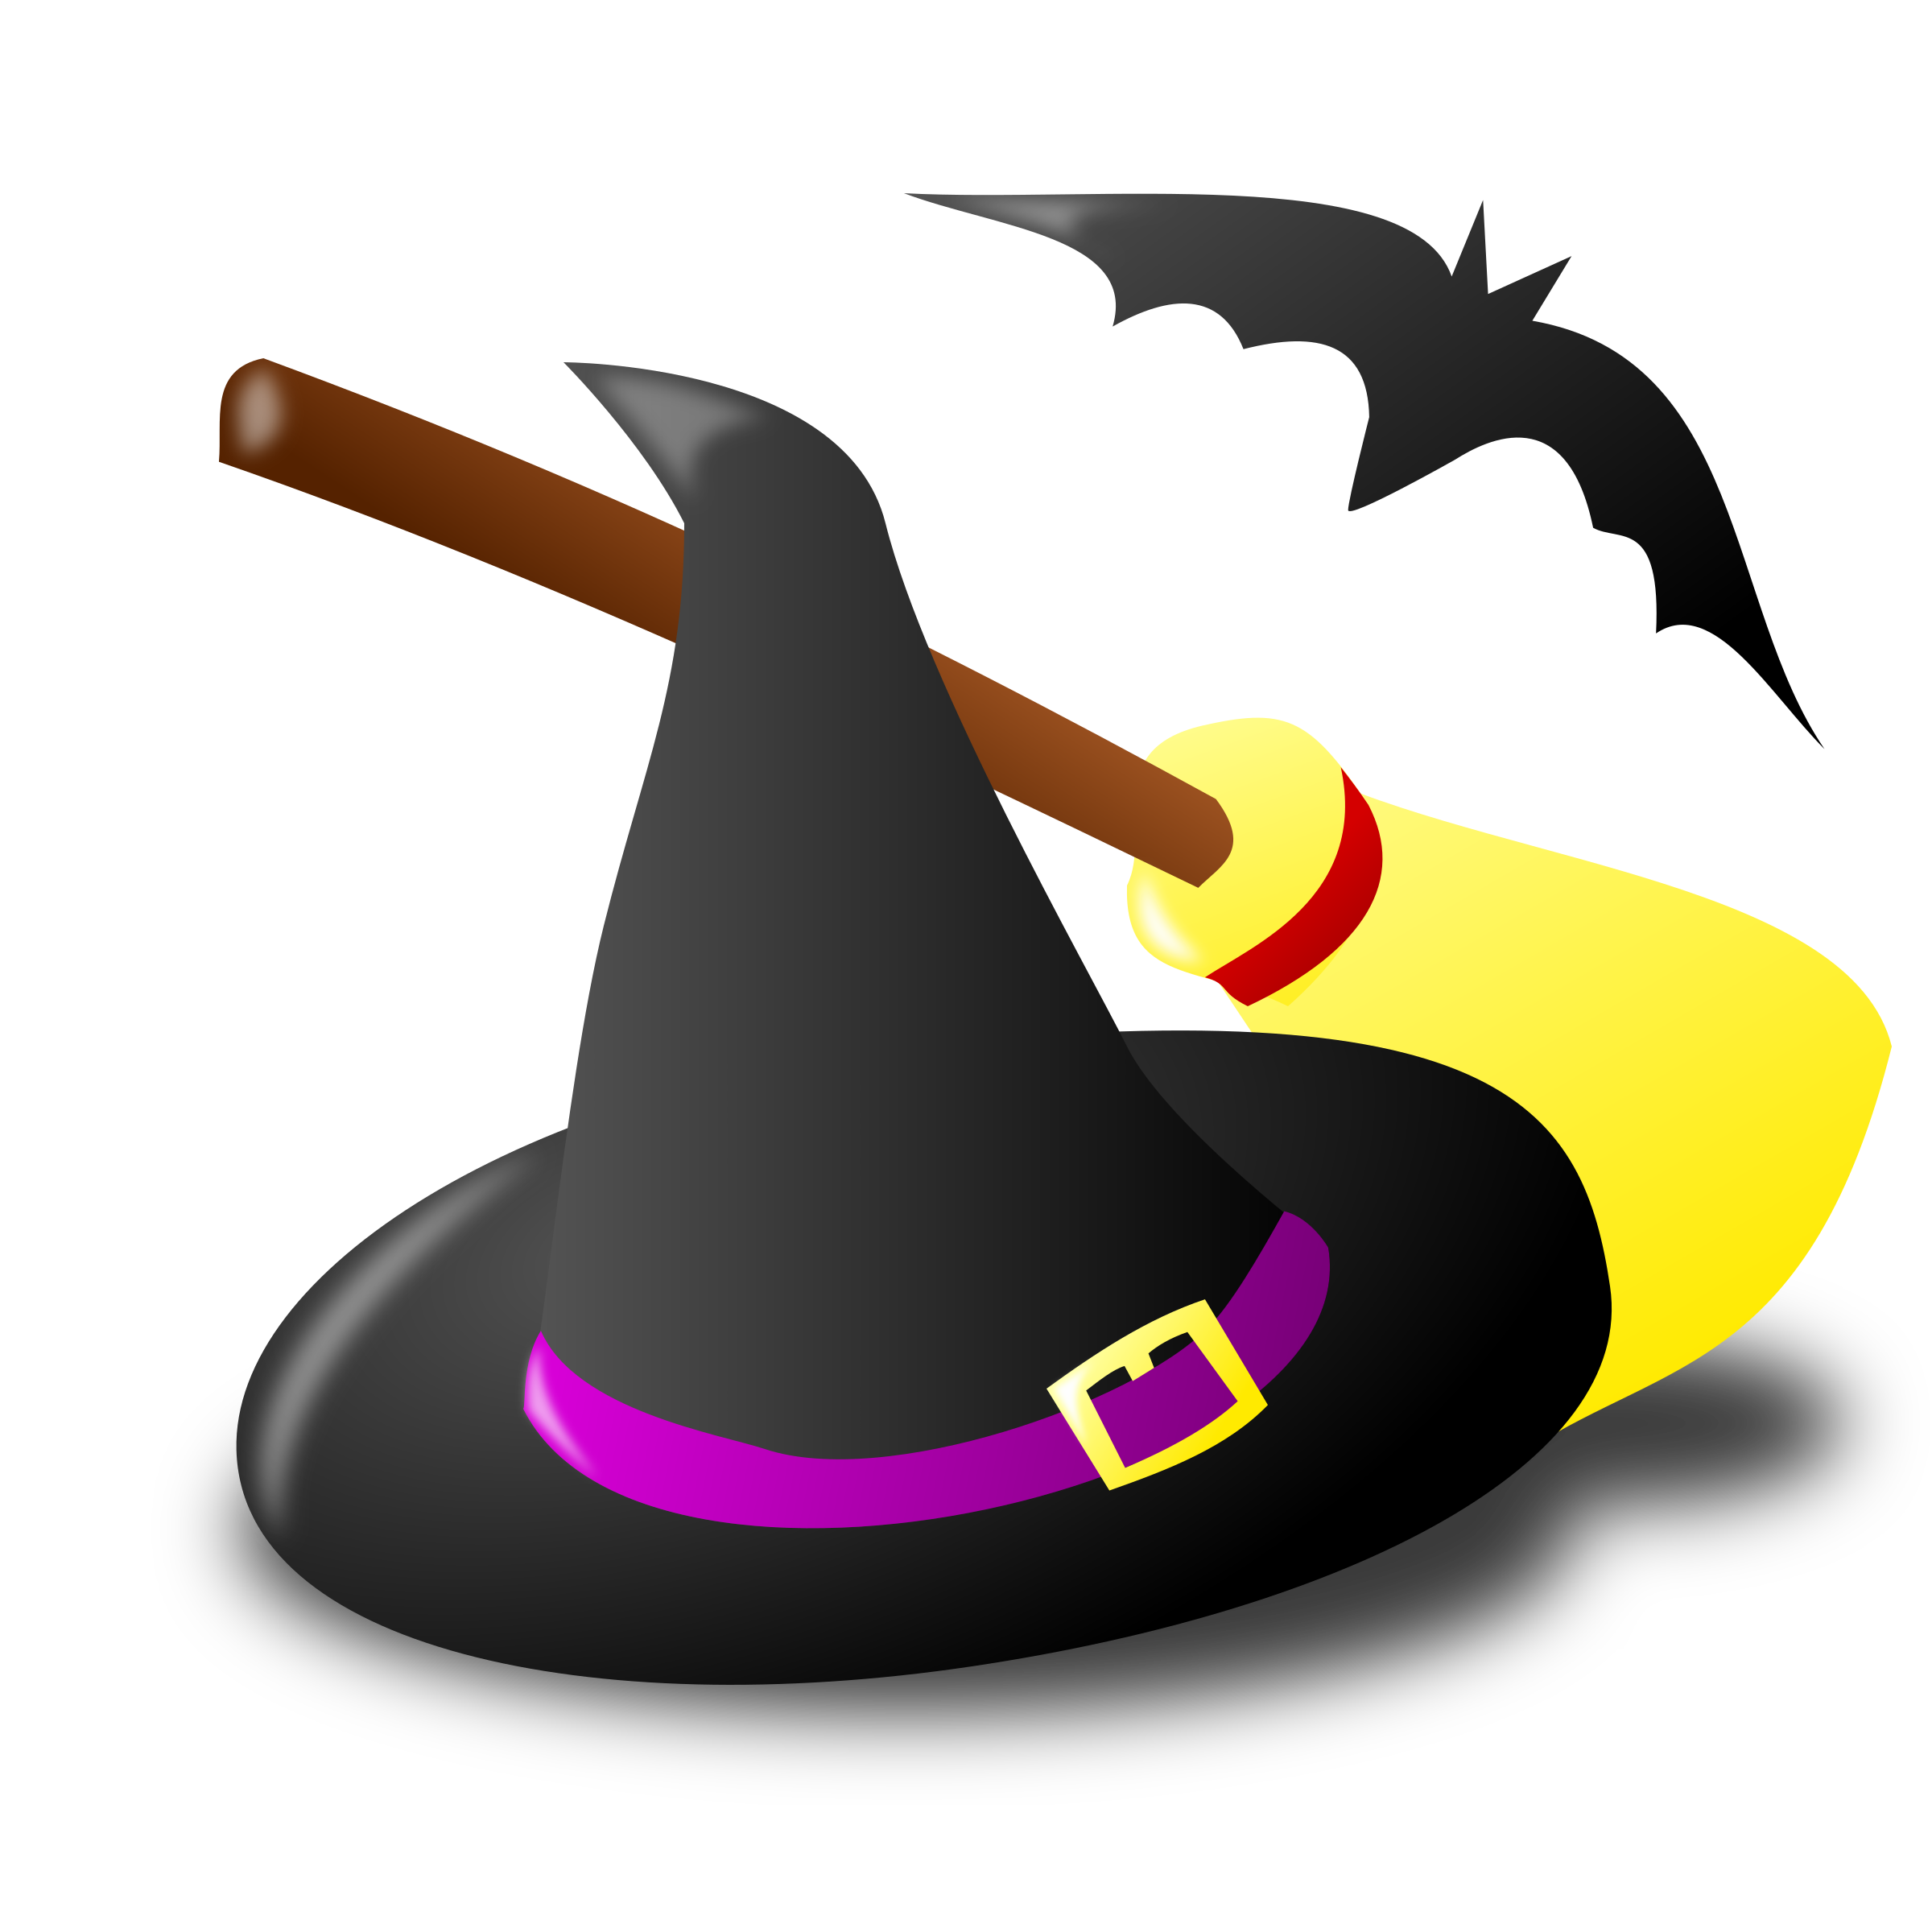 Icon big image png. Clipart halloween hat